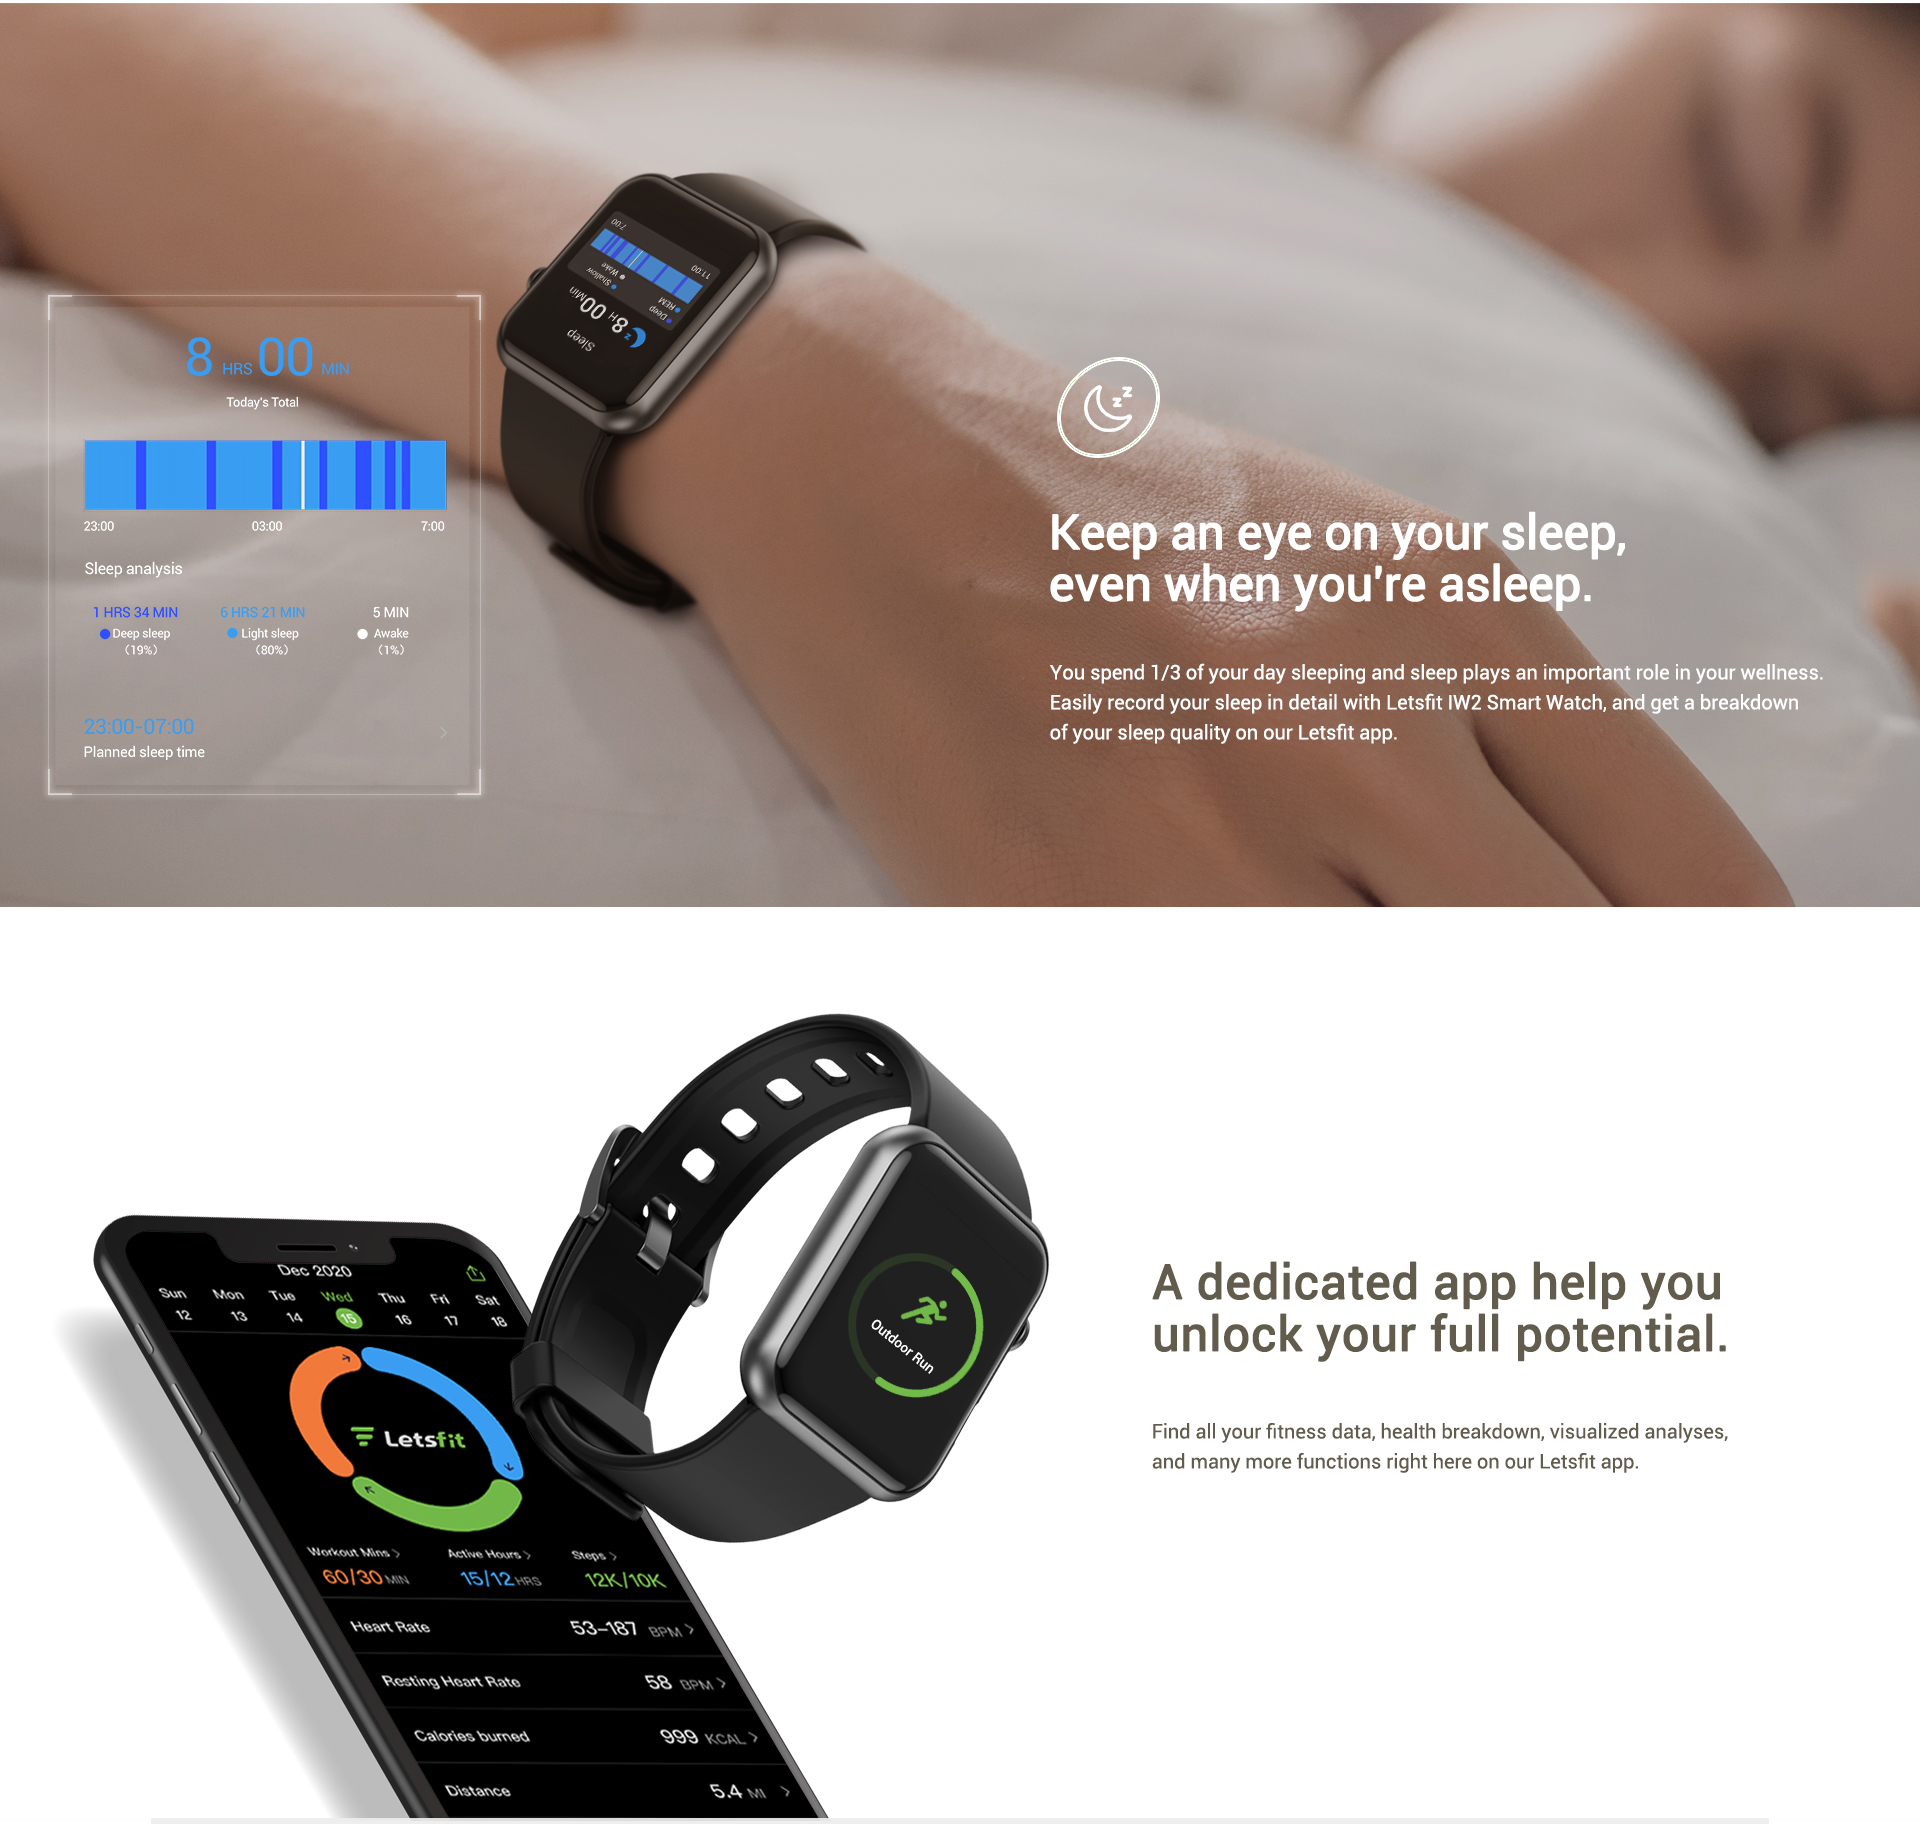 easily monitor your steps, heart rate, distance travelled and more with 10 sports modes